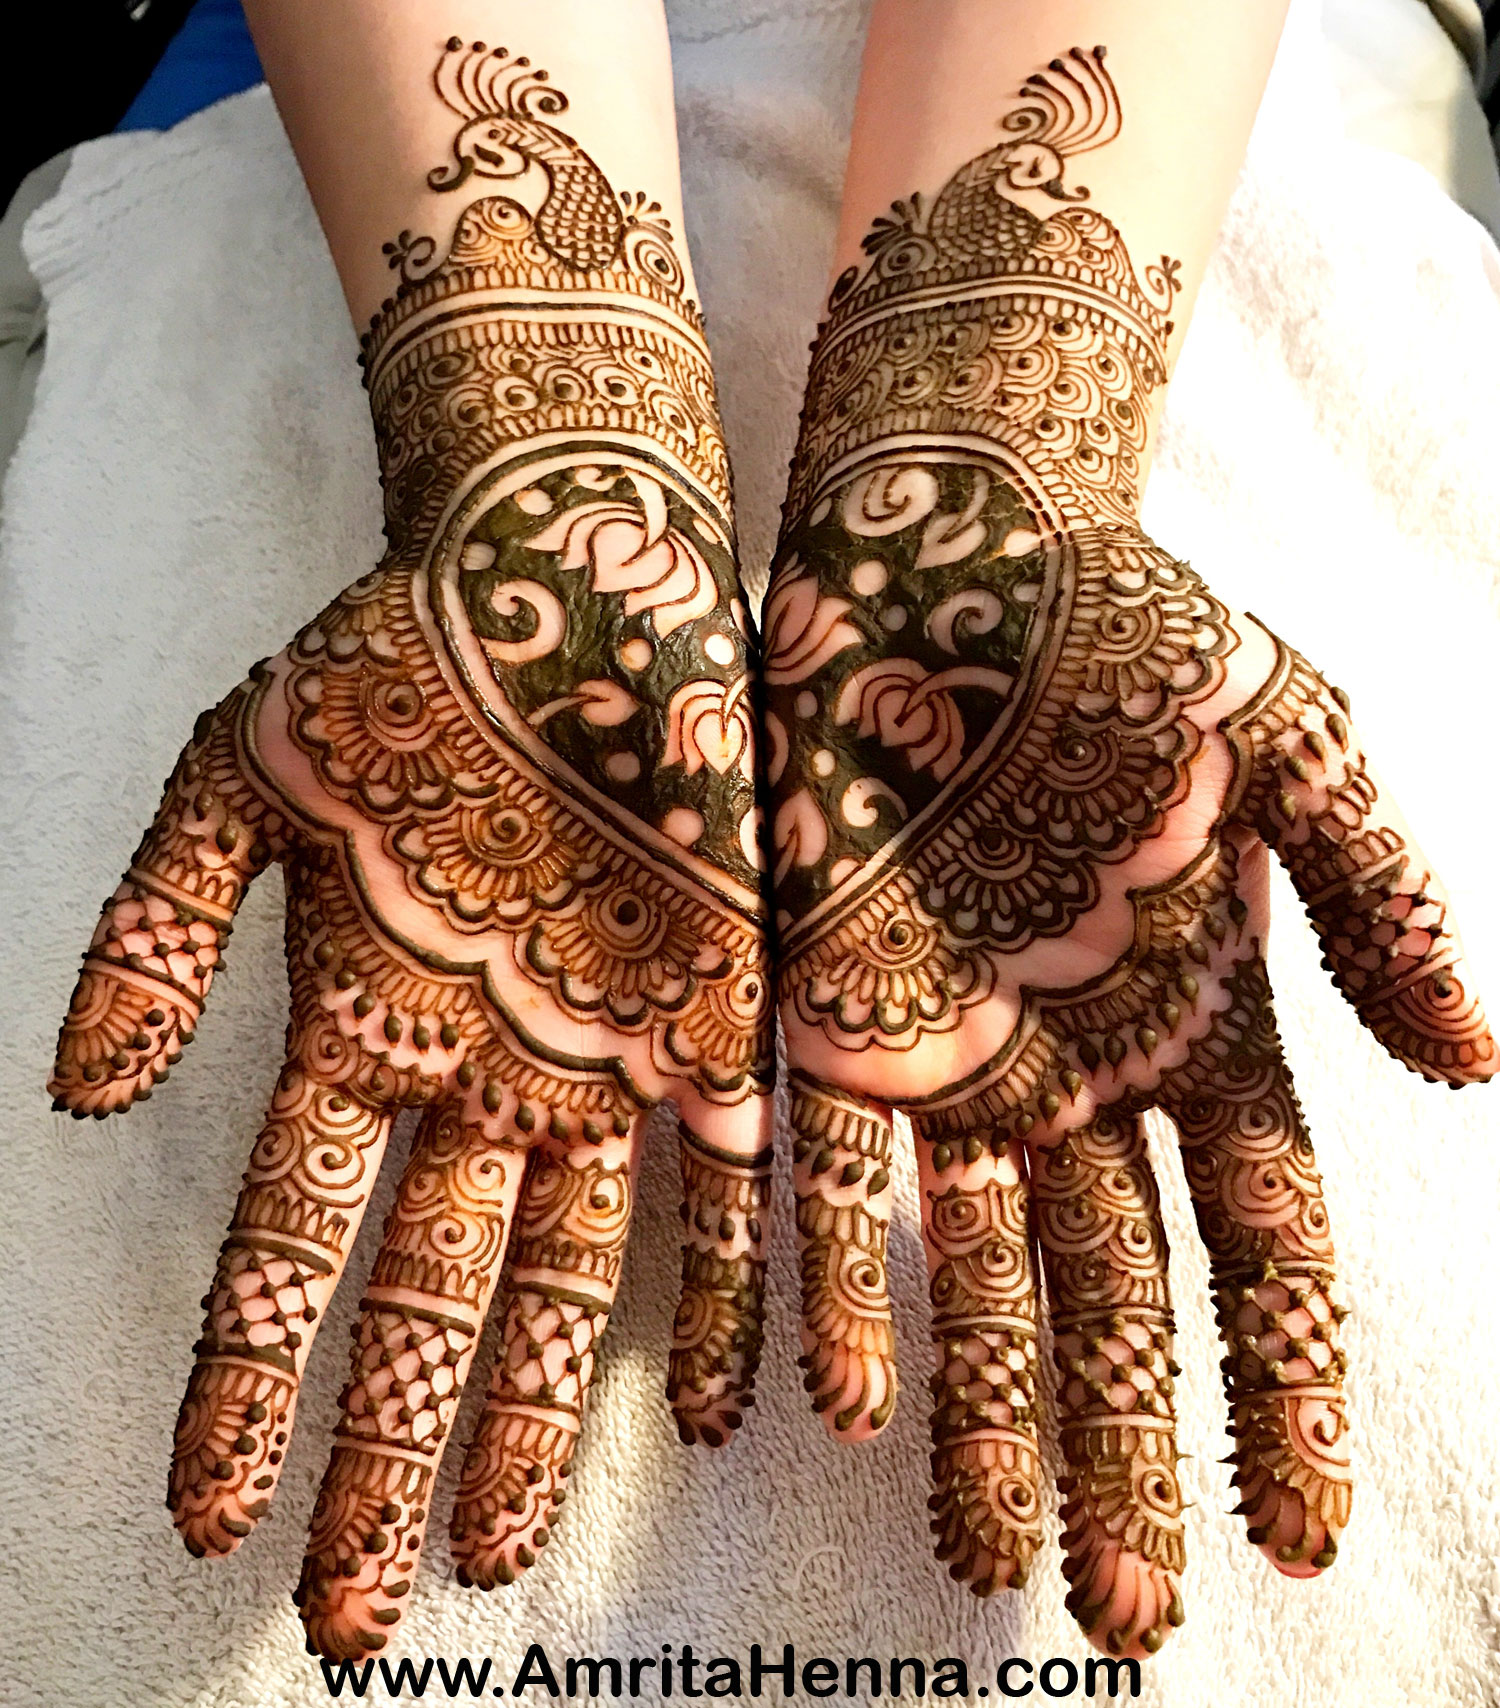 Intricate Mehndi Patterns : Top intricate traditional indian bridal henna mehndi